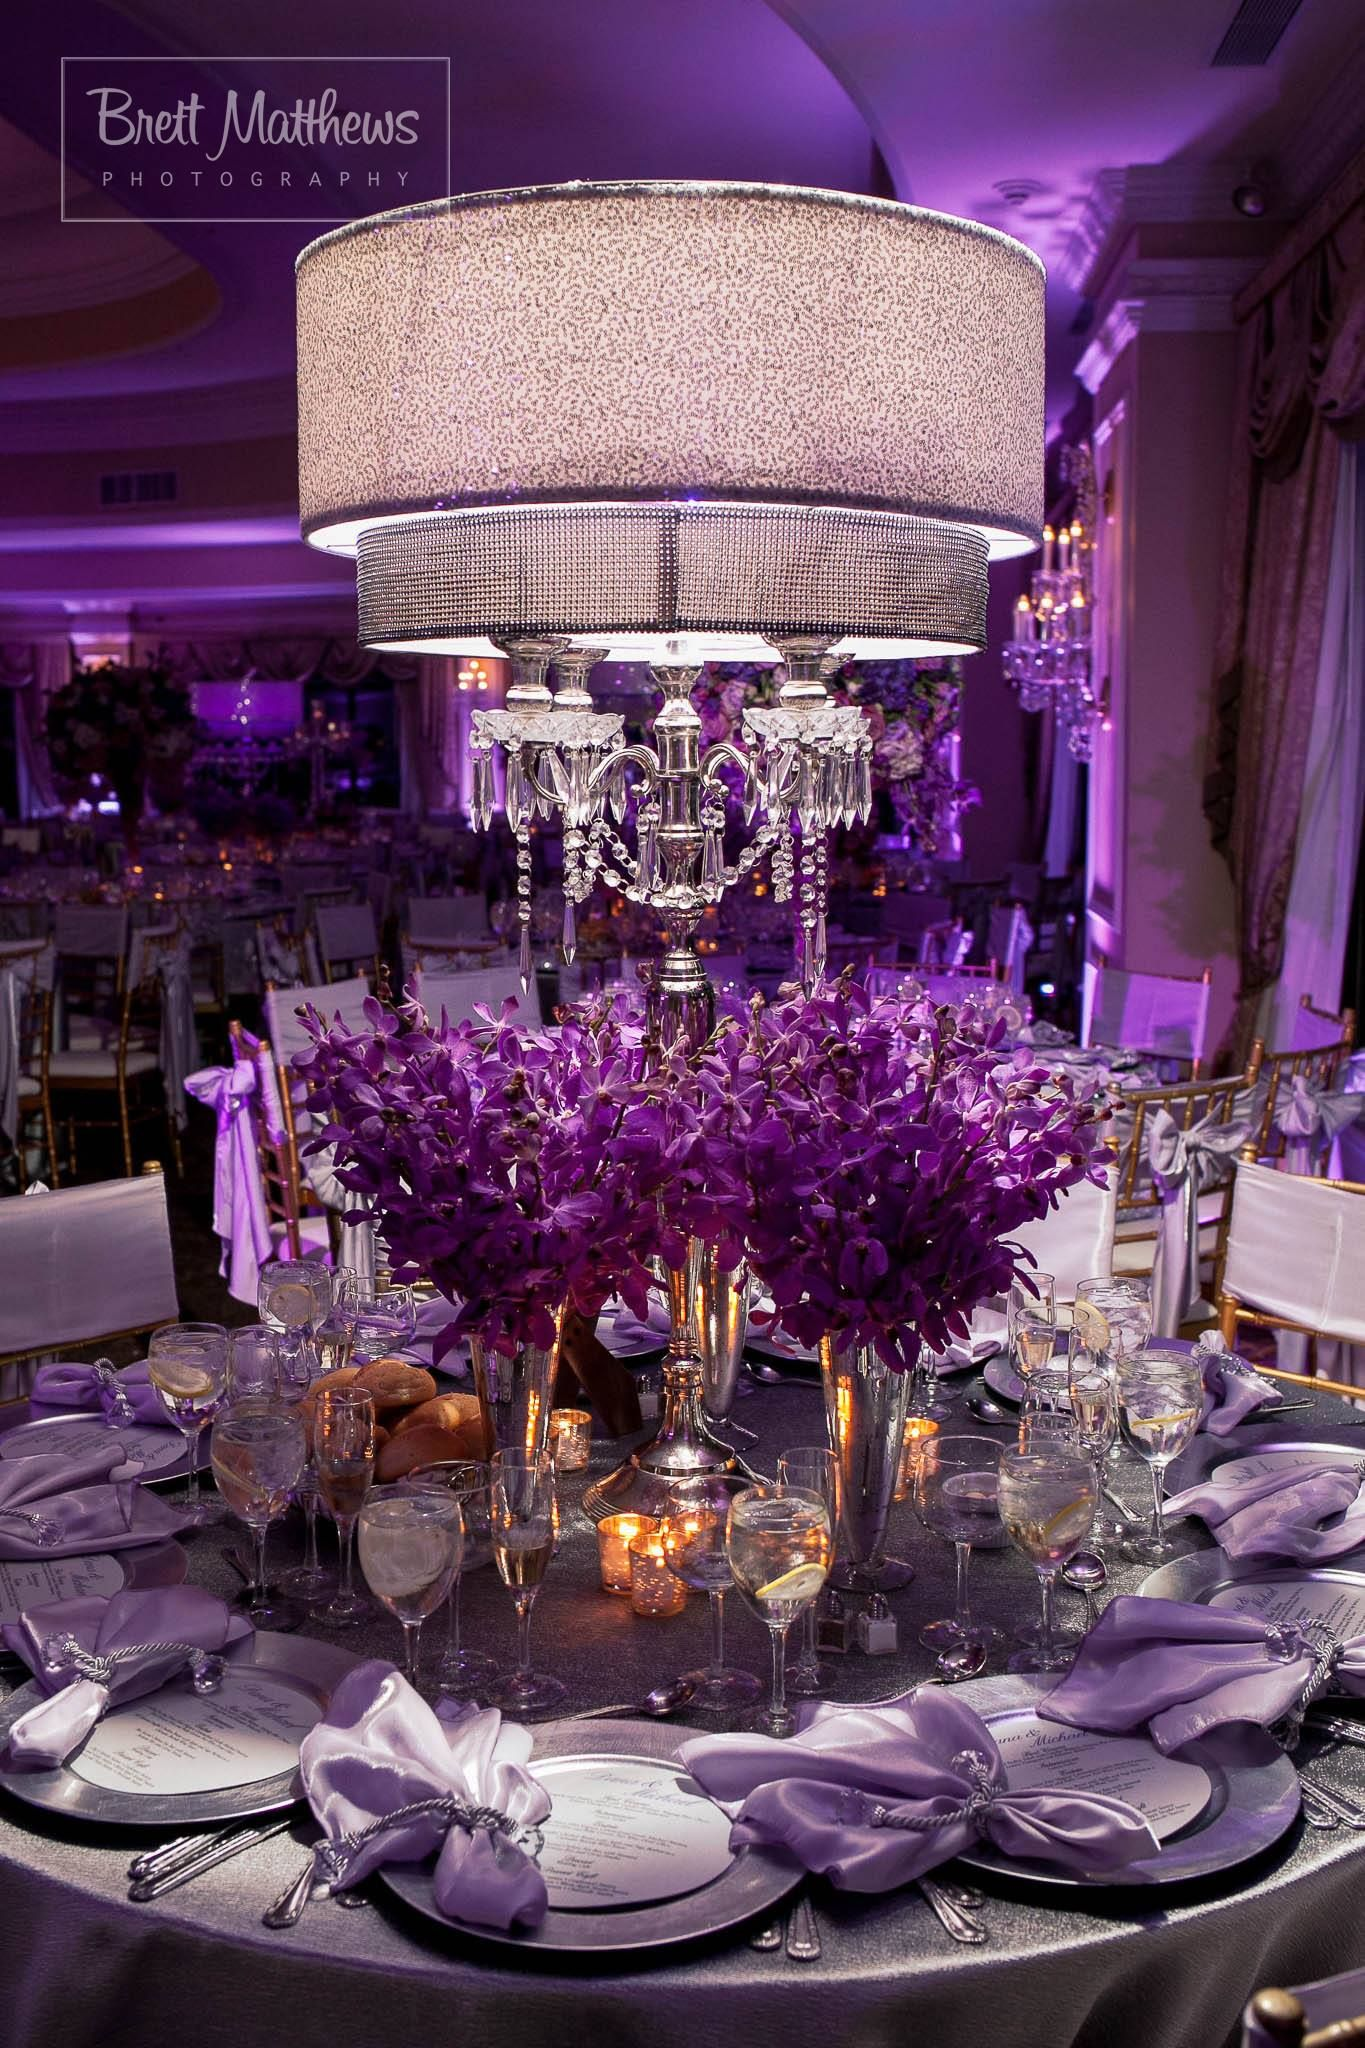 Wedding decoration ideas purple  Another Purple Decor  Fabulous Events u Weddings u Full Service